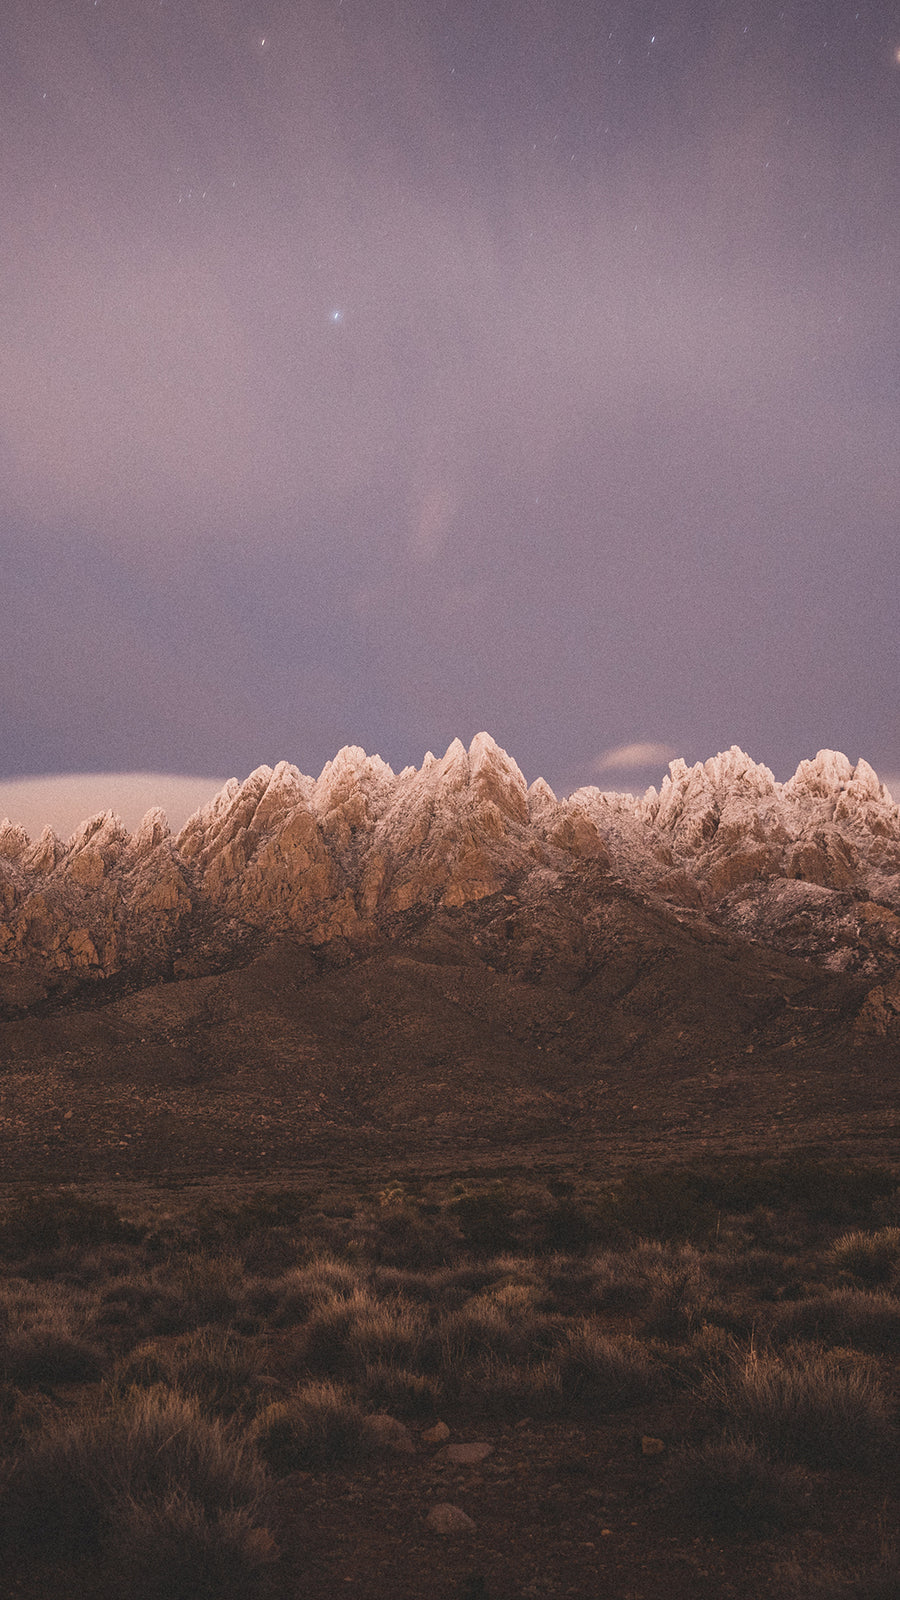 Snowy Peaks of the Organ Mountains Phone Wallpapers - Organ Mountain Outfitters